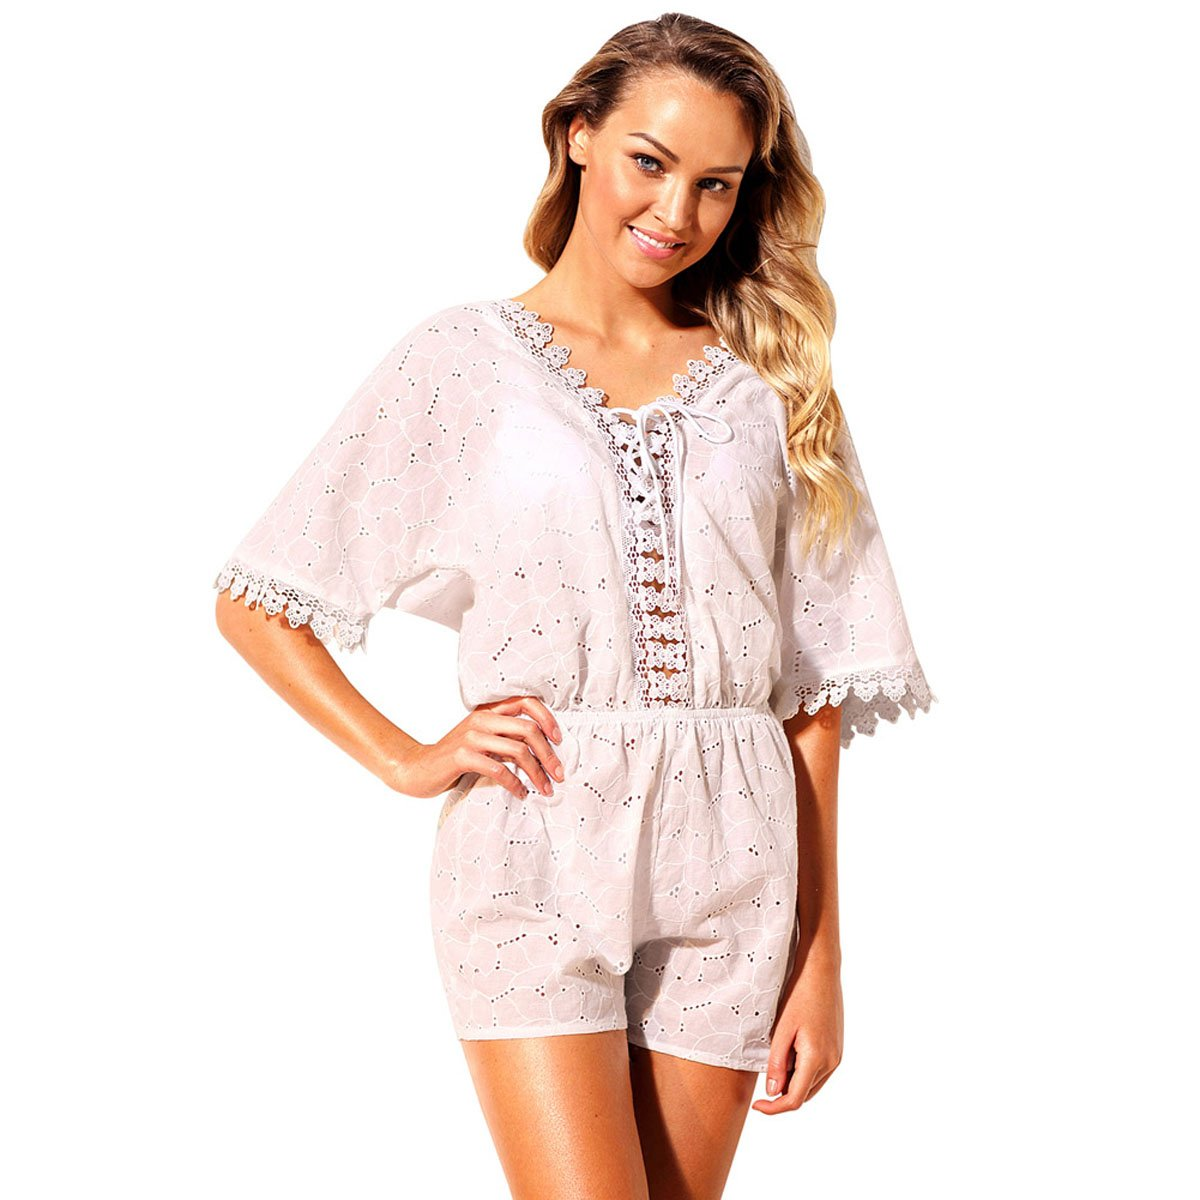 LIAN Beach Dresses Vacation Vneck Sleeve Embroidery Lace Waist Elastic Beach Jumpsuit Mother's Day Gift ( Size   S )